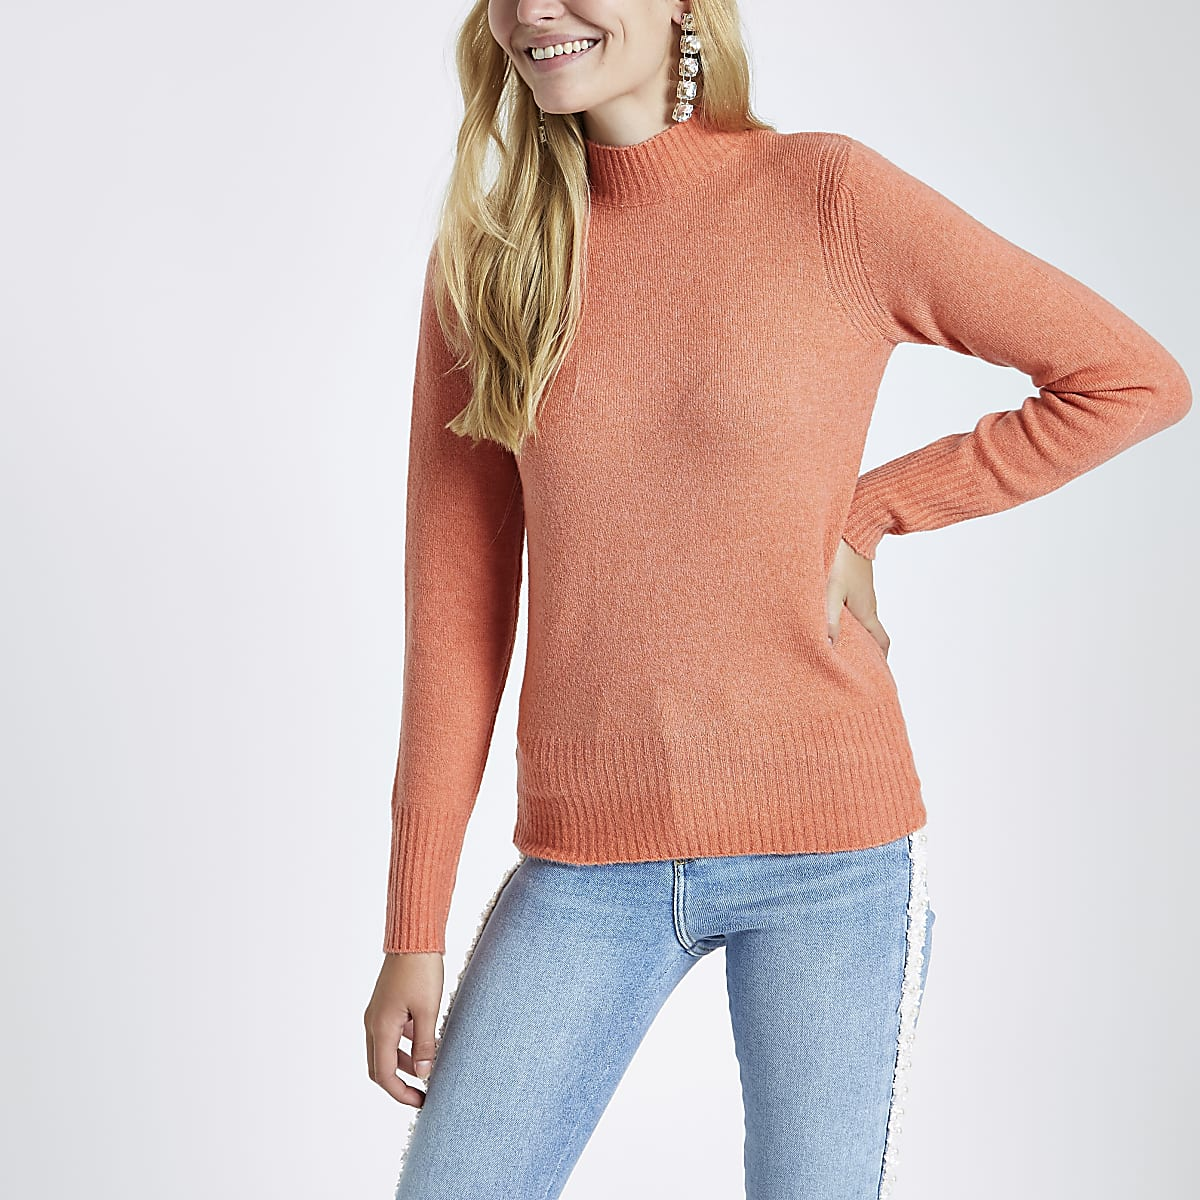 Coral knit turtle neck sweater